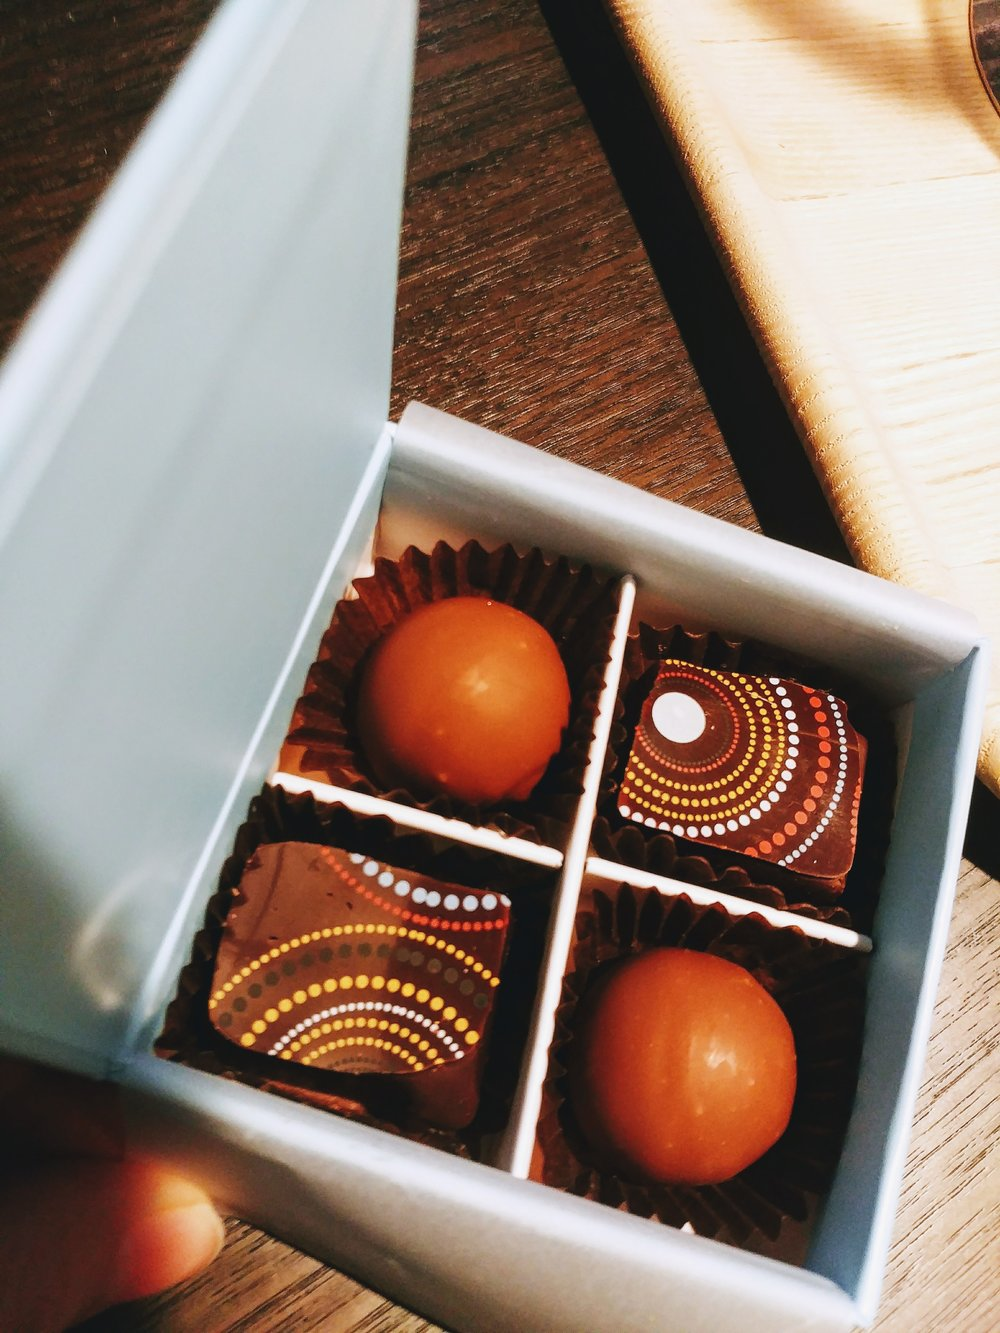 A small box of chocolate from their on-site chocolate shop awaiting in our room